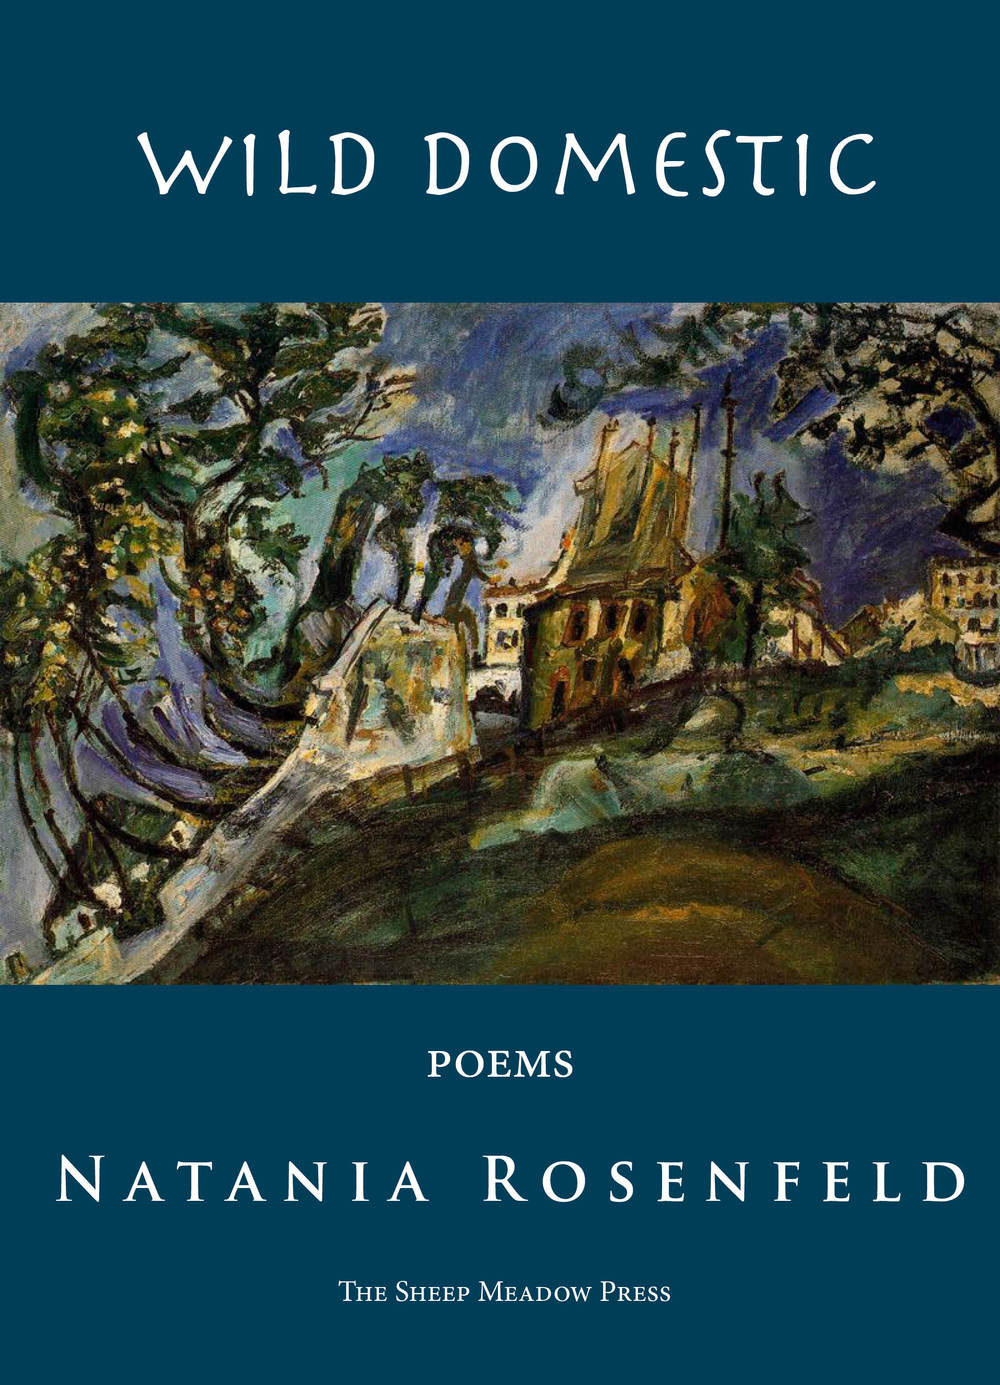 Rosenfeld_Wild Domestic_Cover.jpg